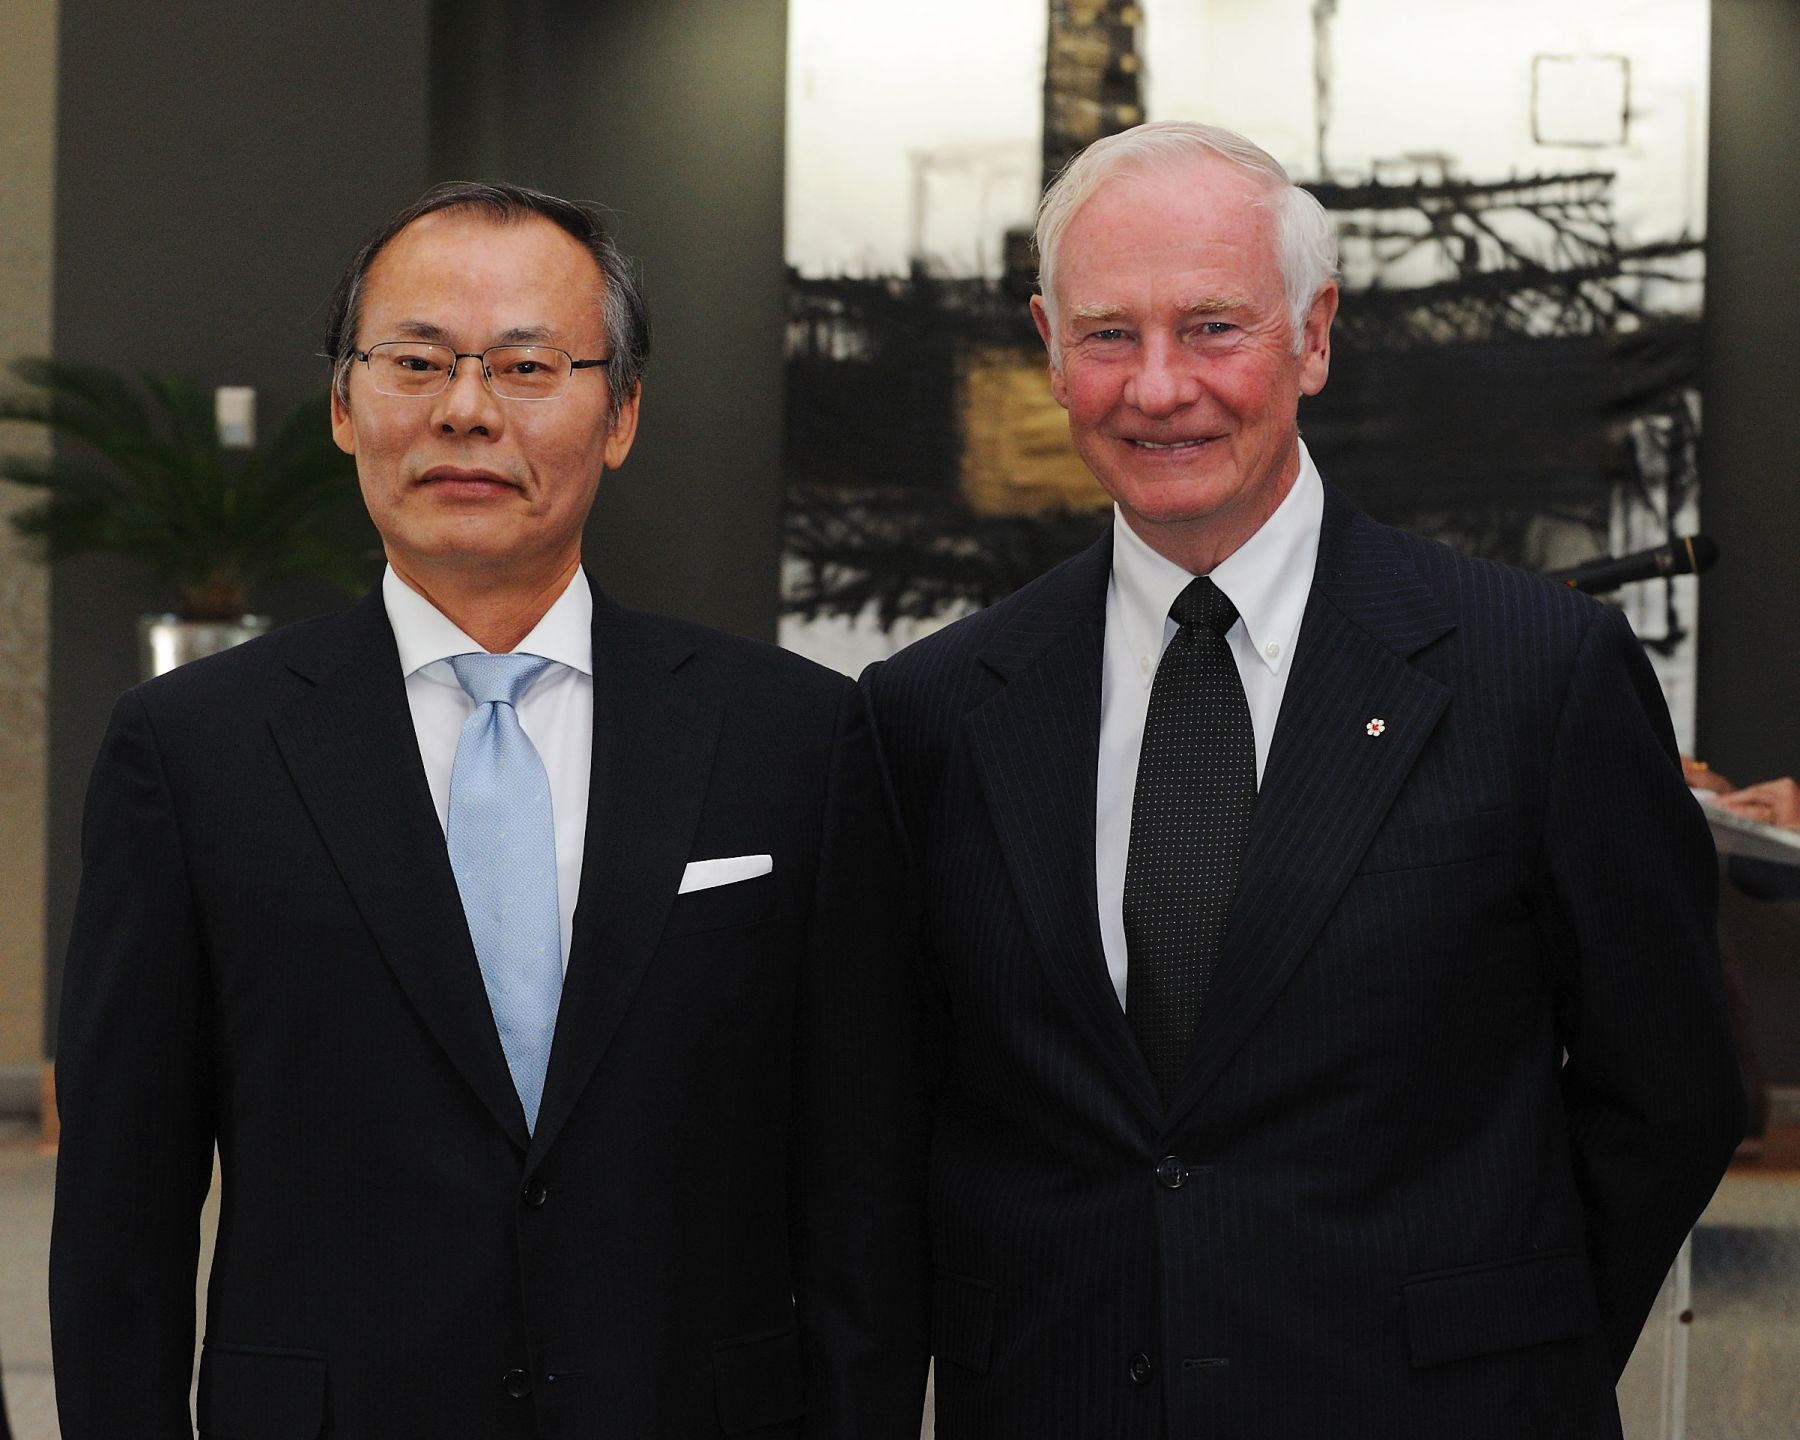 The Governor General received the credentials of His Excellency Nam Joo Hong